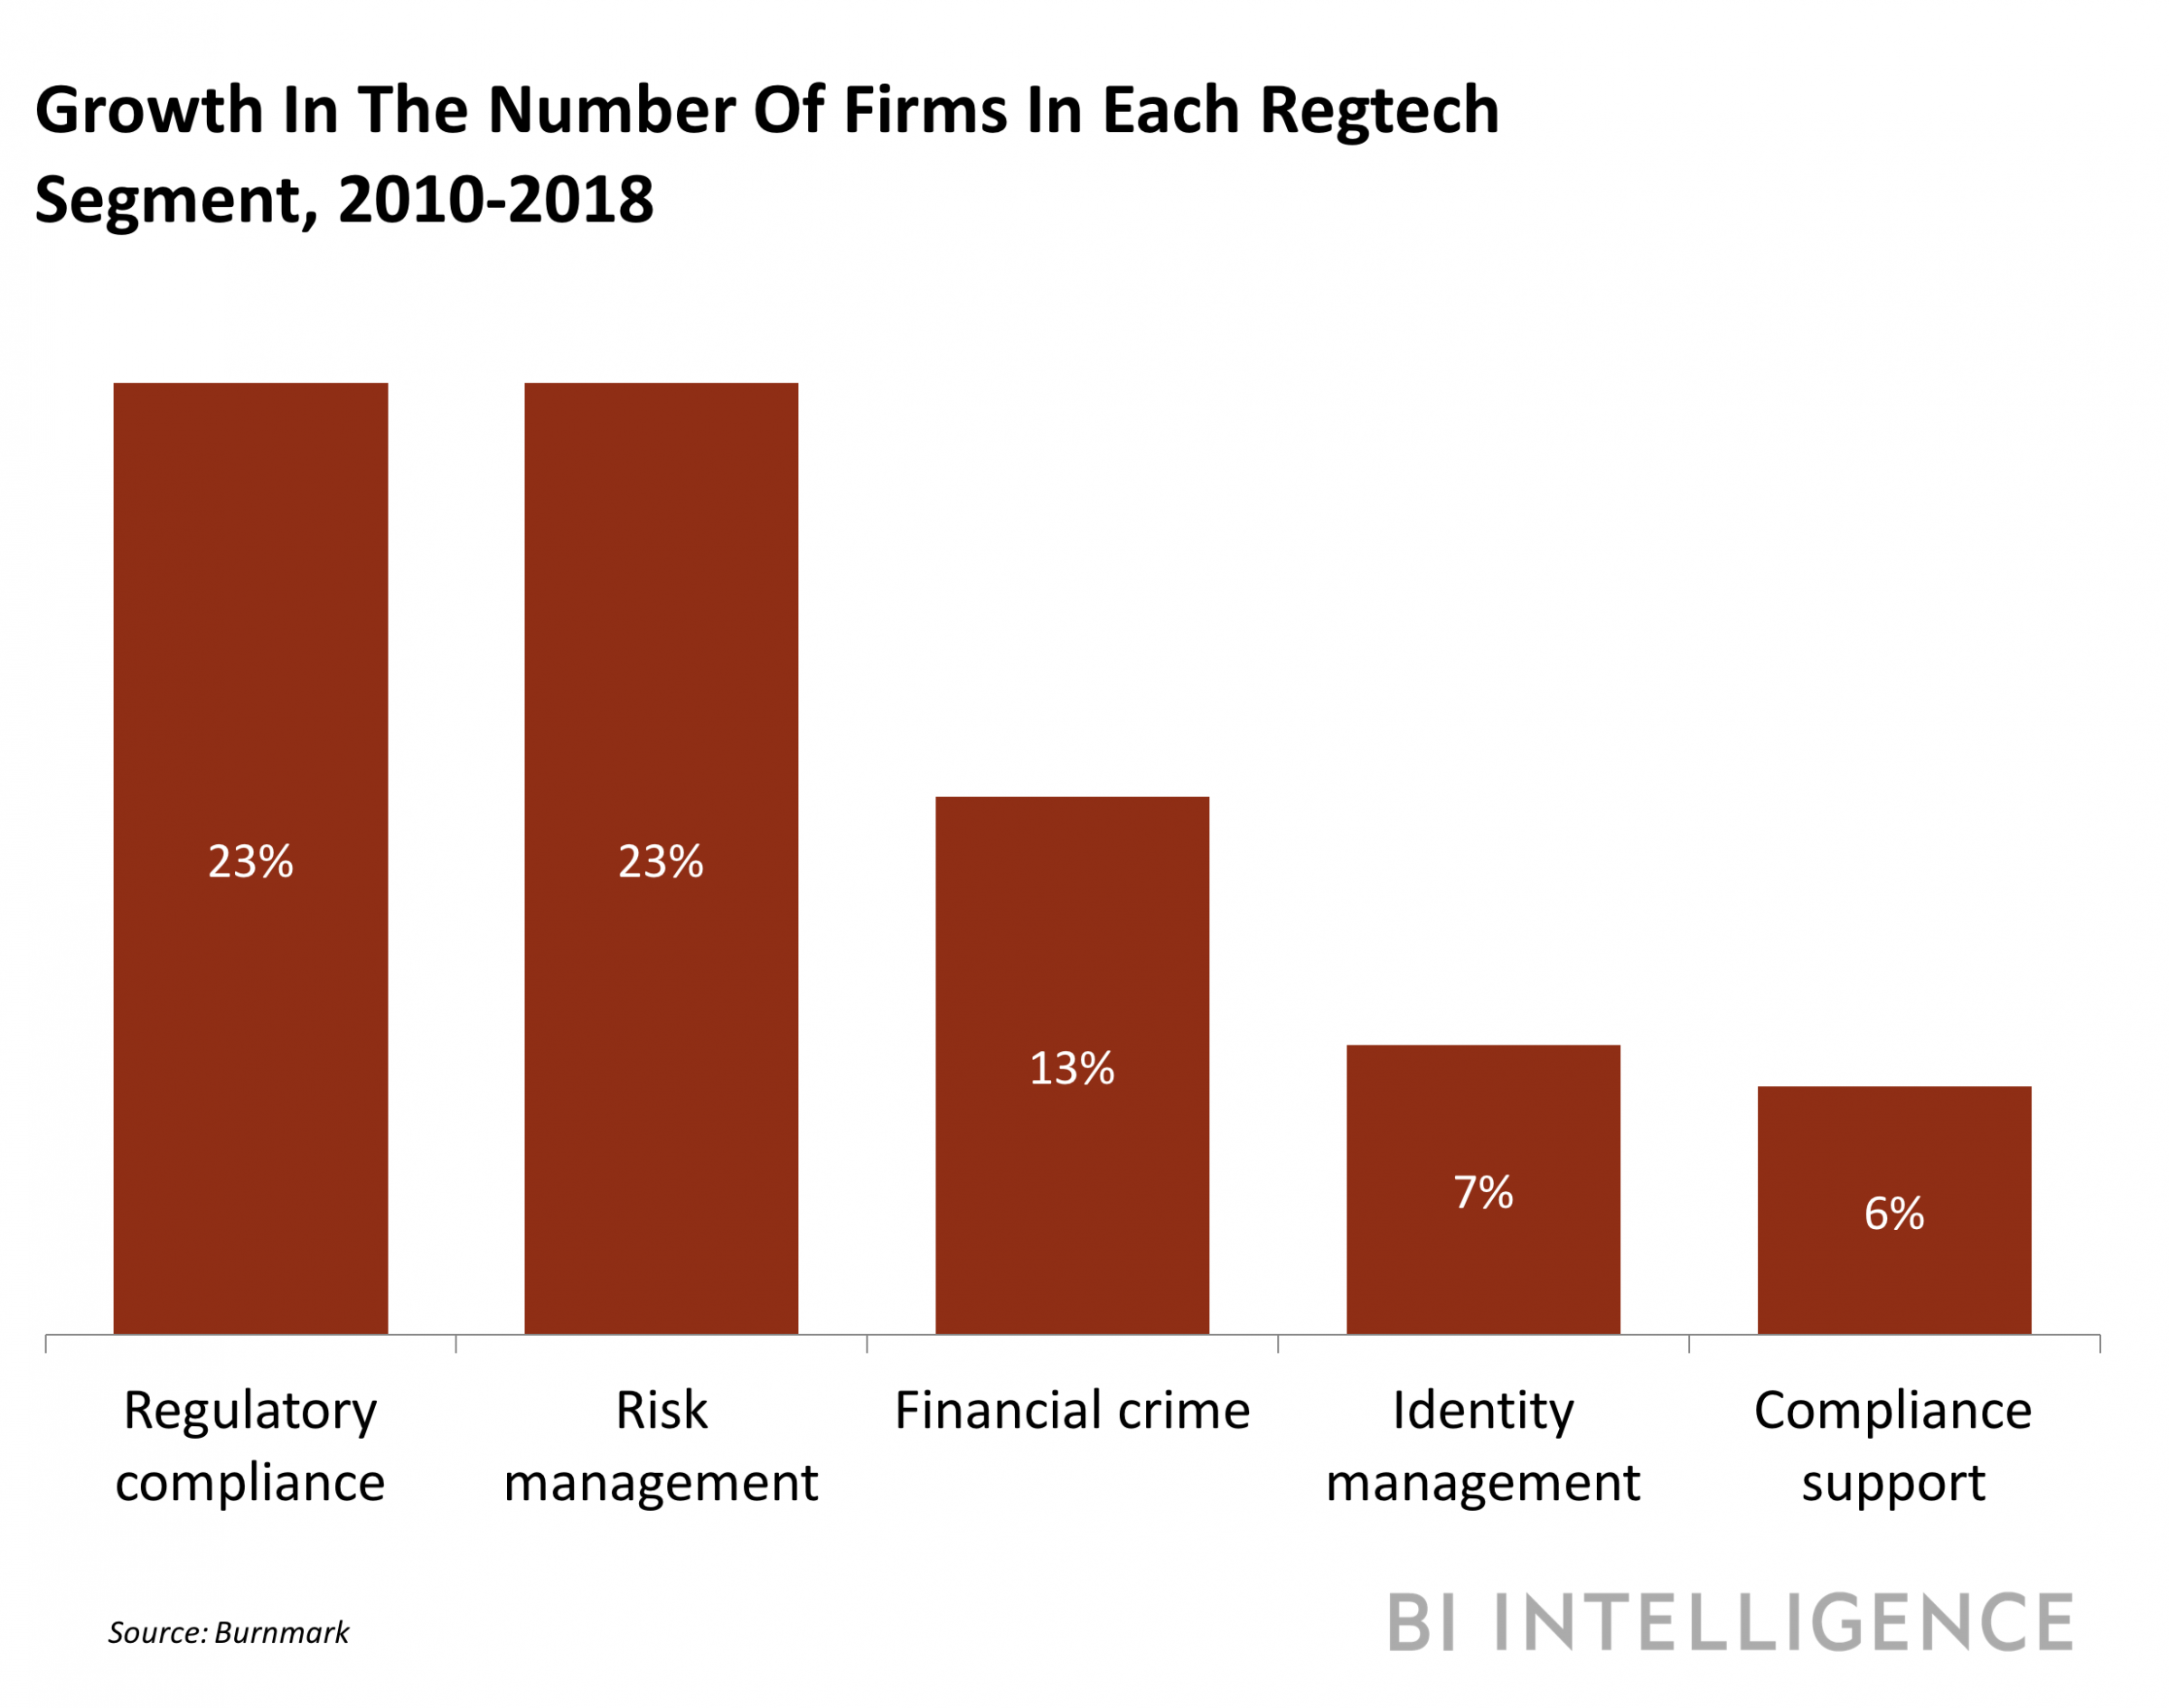 Here S How The Regtech Landscape Is Evolving To Address Increasing